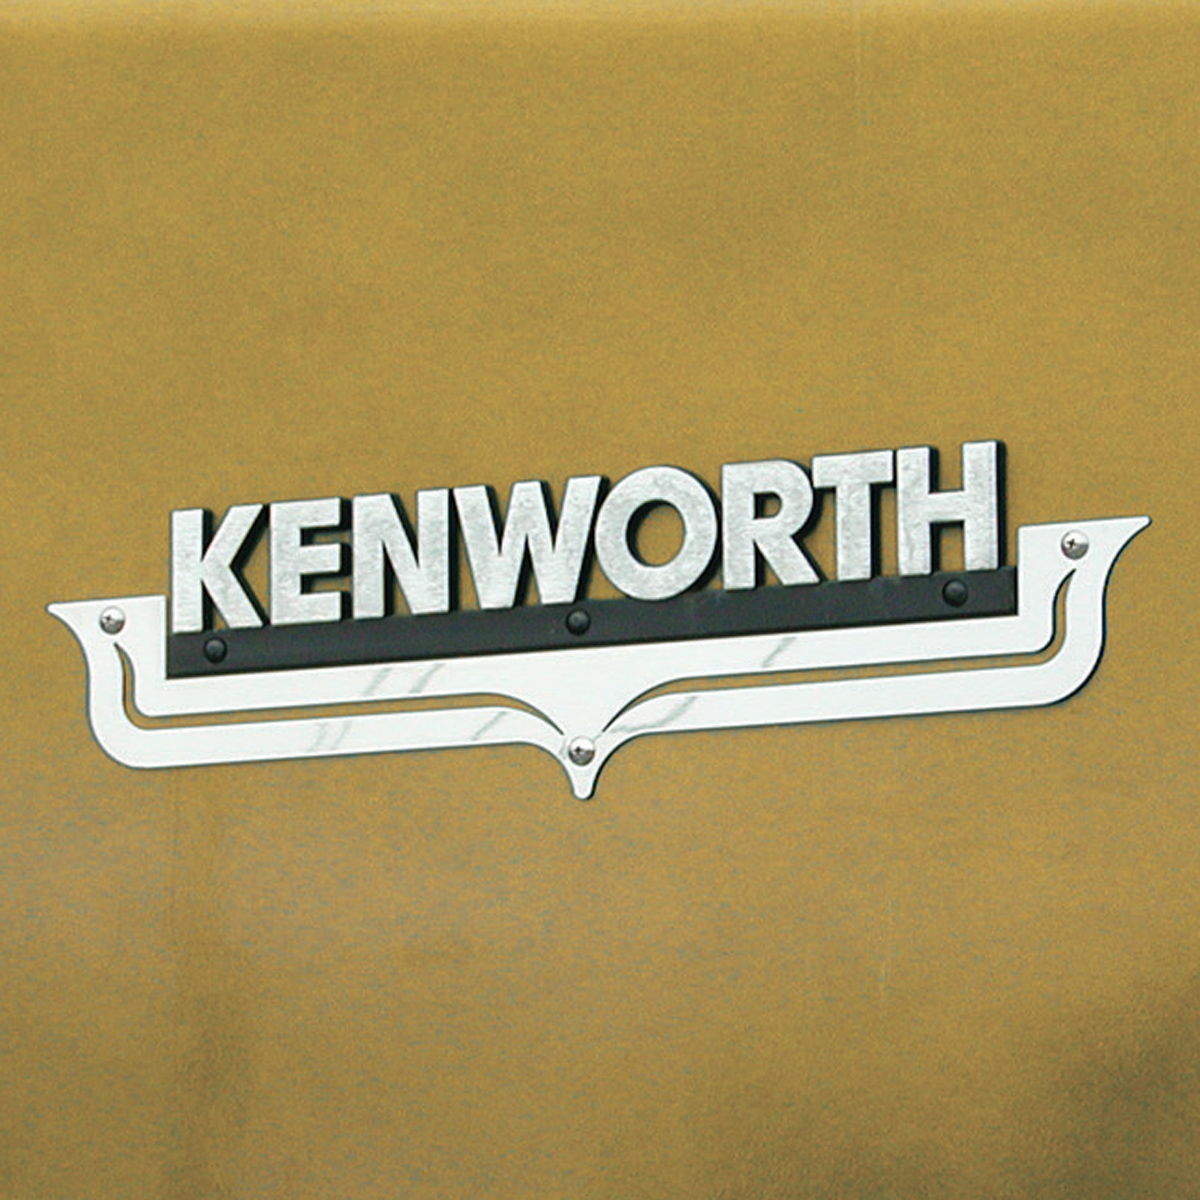 T2000 - Kenworth - Browse by truck brands